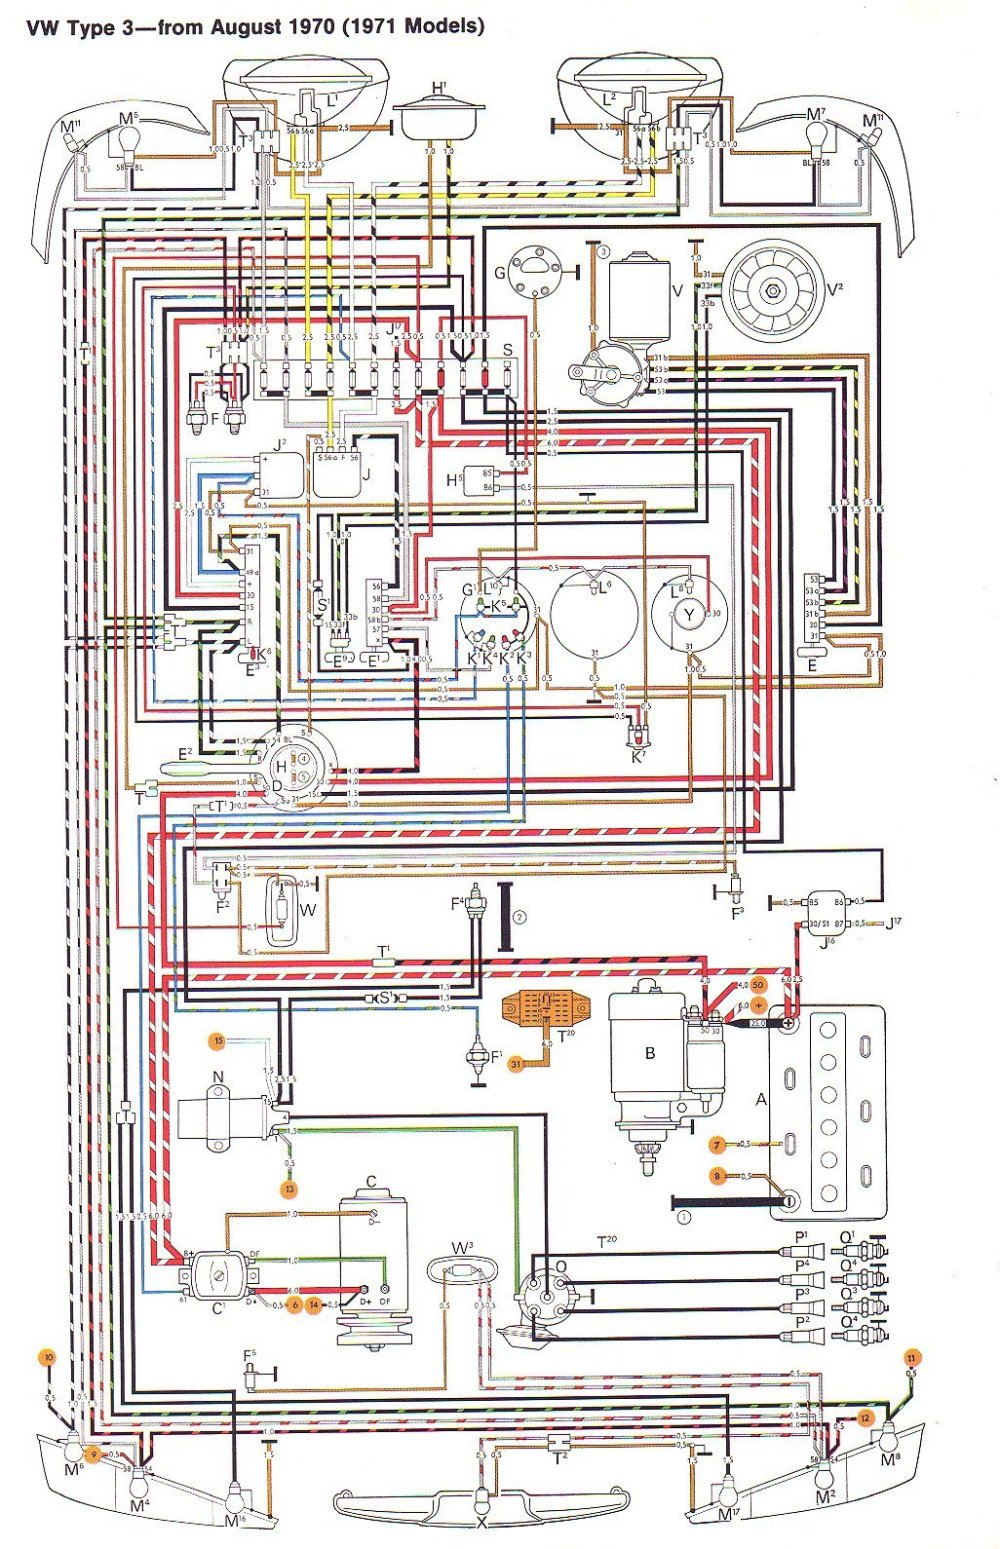 medium resolution of vw type 3 wiring diagrams rh hallvw clara net wiring diagram 2002 vw eurovan volkswagen type 3 wiring diagram